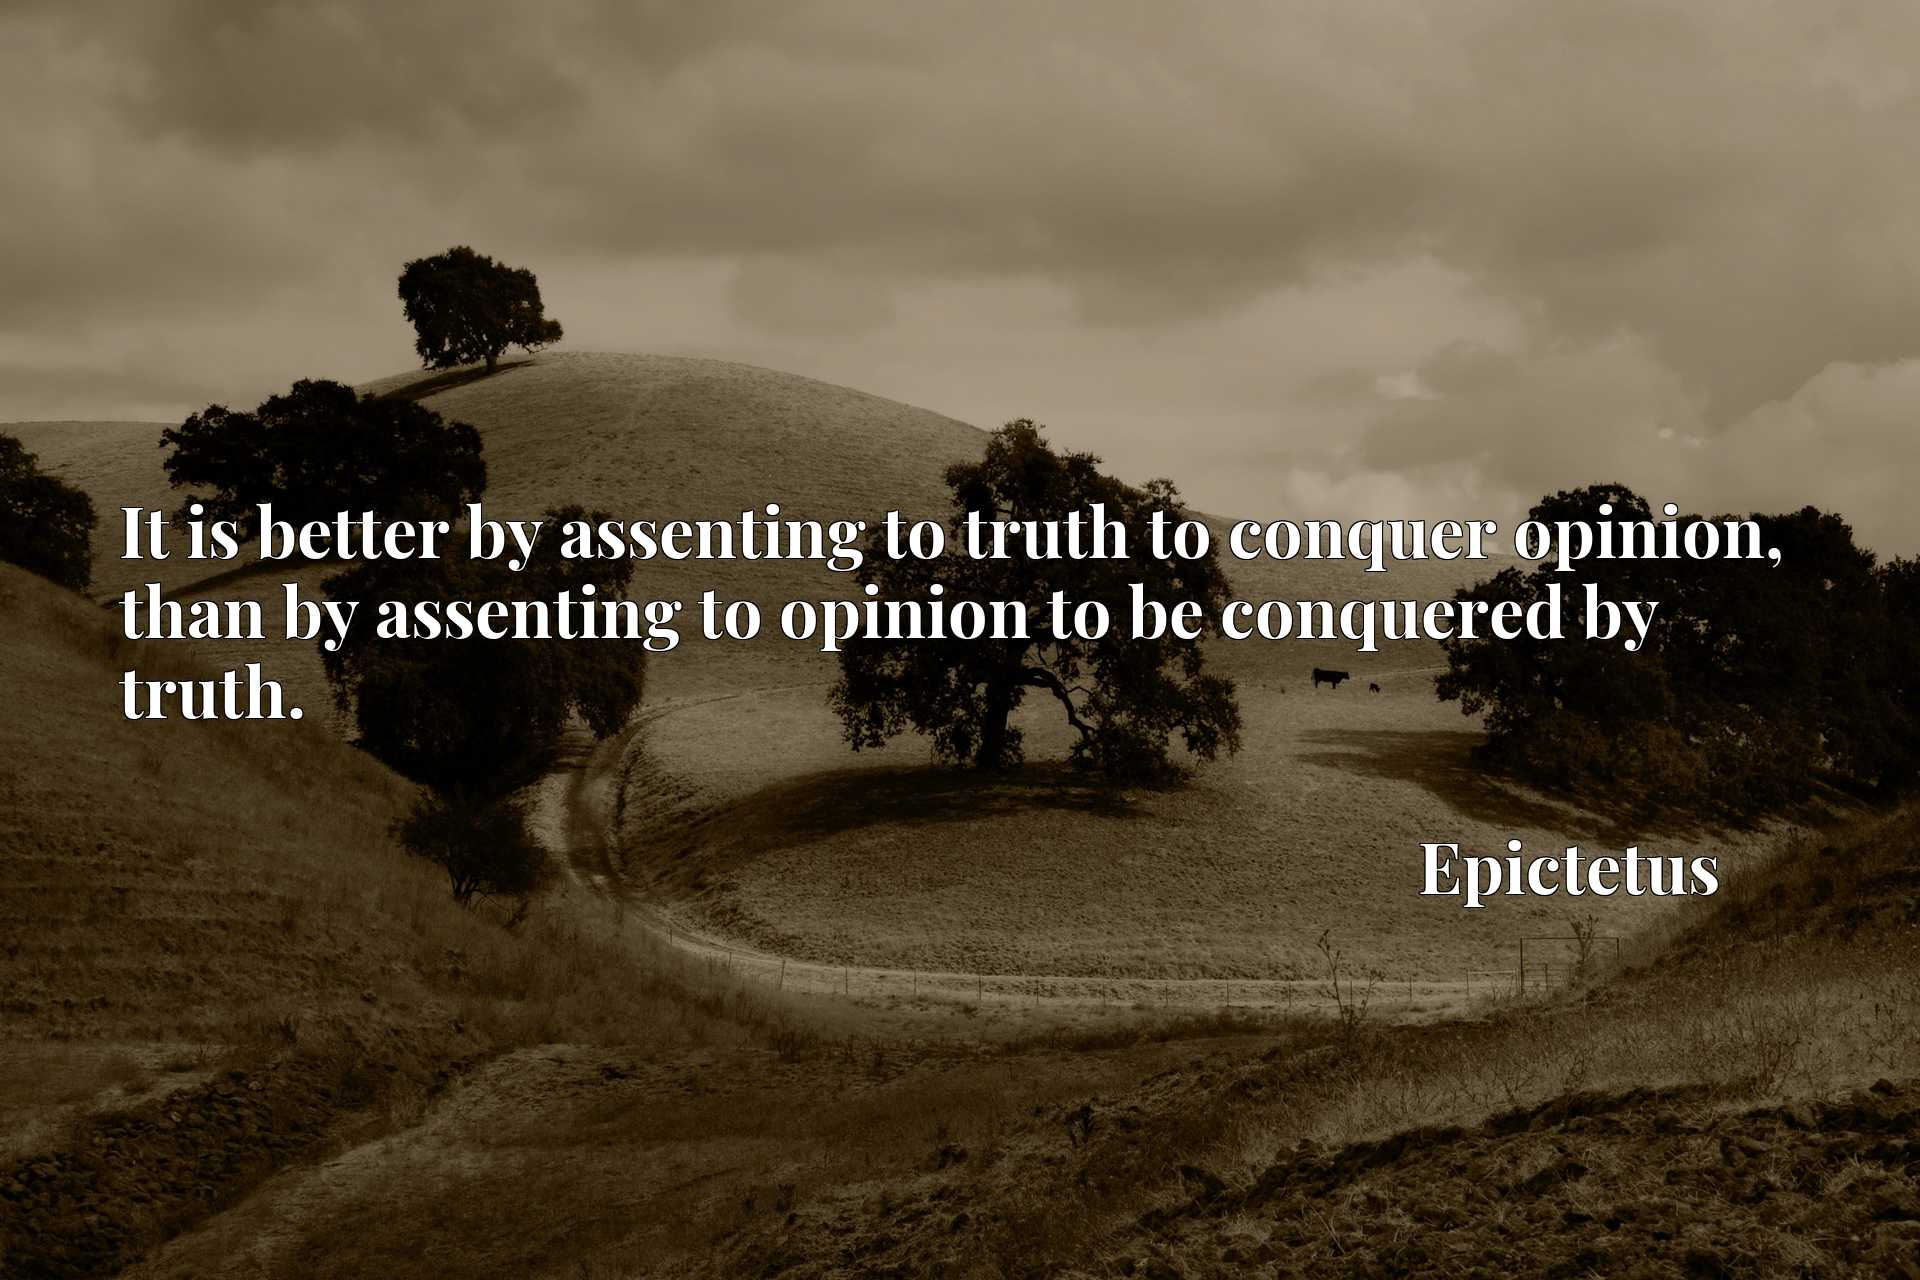 It is better by assenting to truth to conquer opinion, than by assenting to opinion to be conquered by truth.